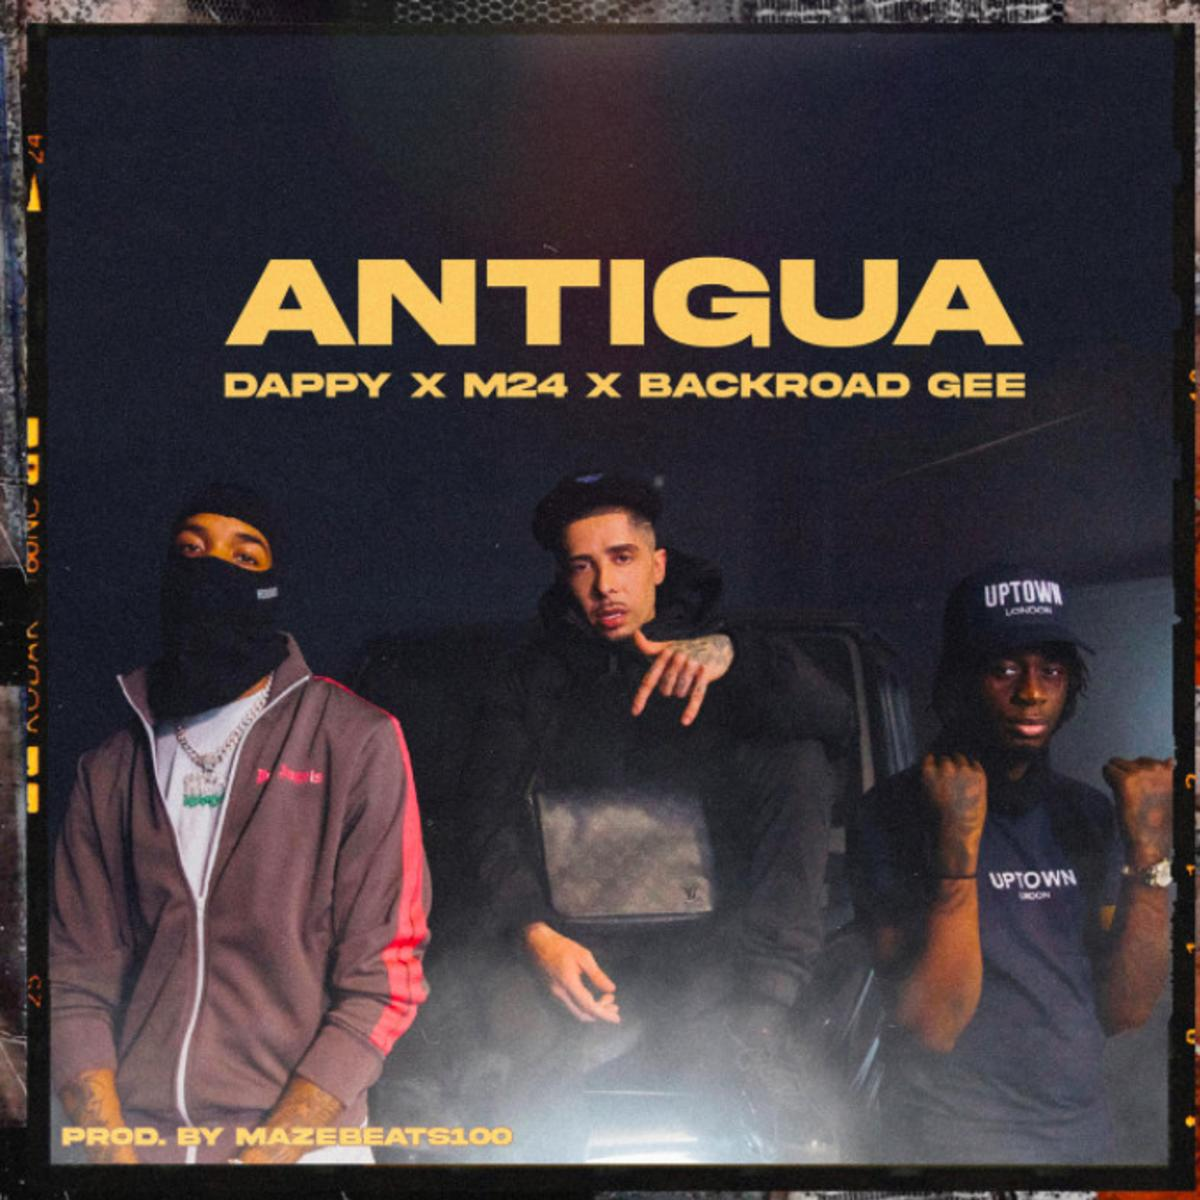 MP3: Dappy - Antigua Ft. M24 & BackRoad Gee